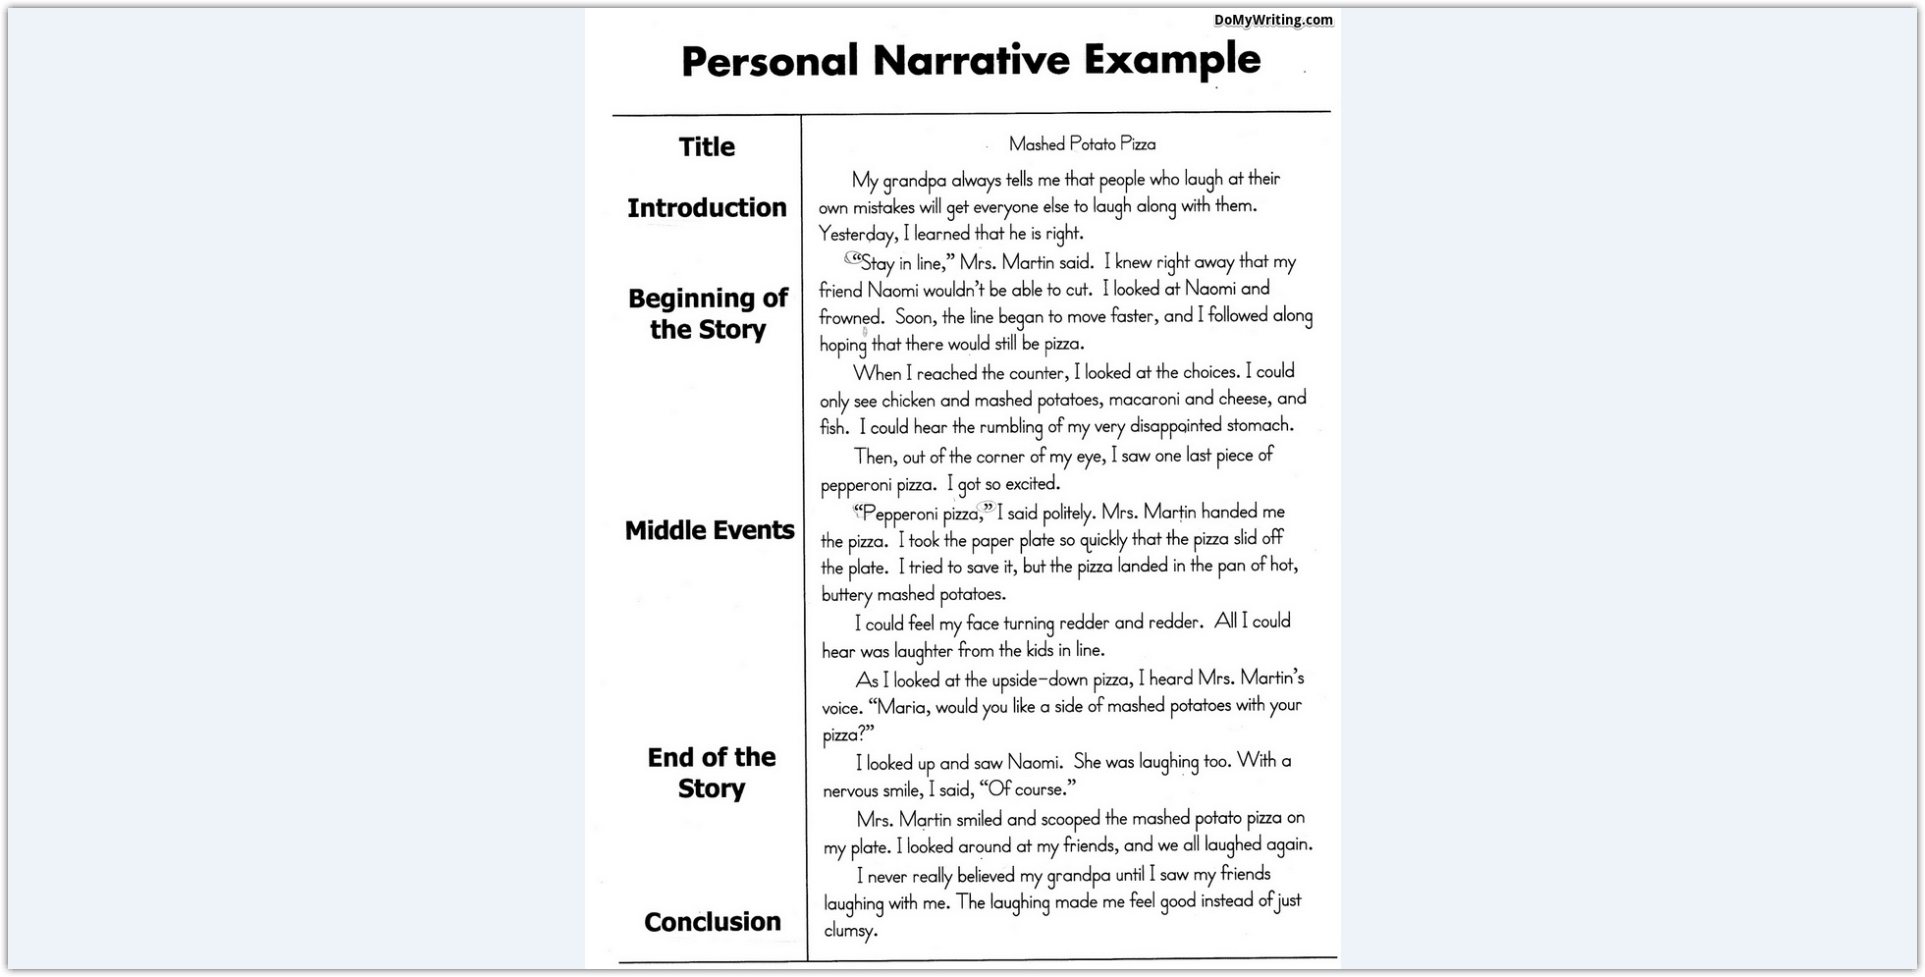 002 Narrative Essay Exceptional Rubric Outline Template Pdf Sample Full